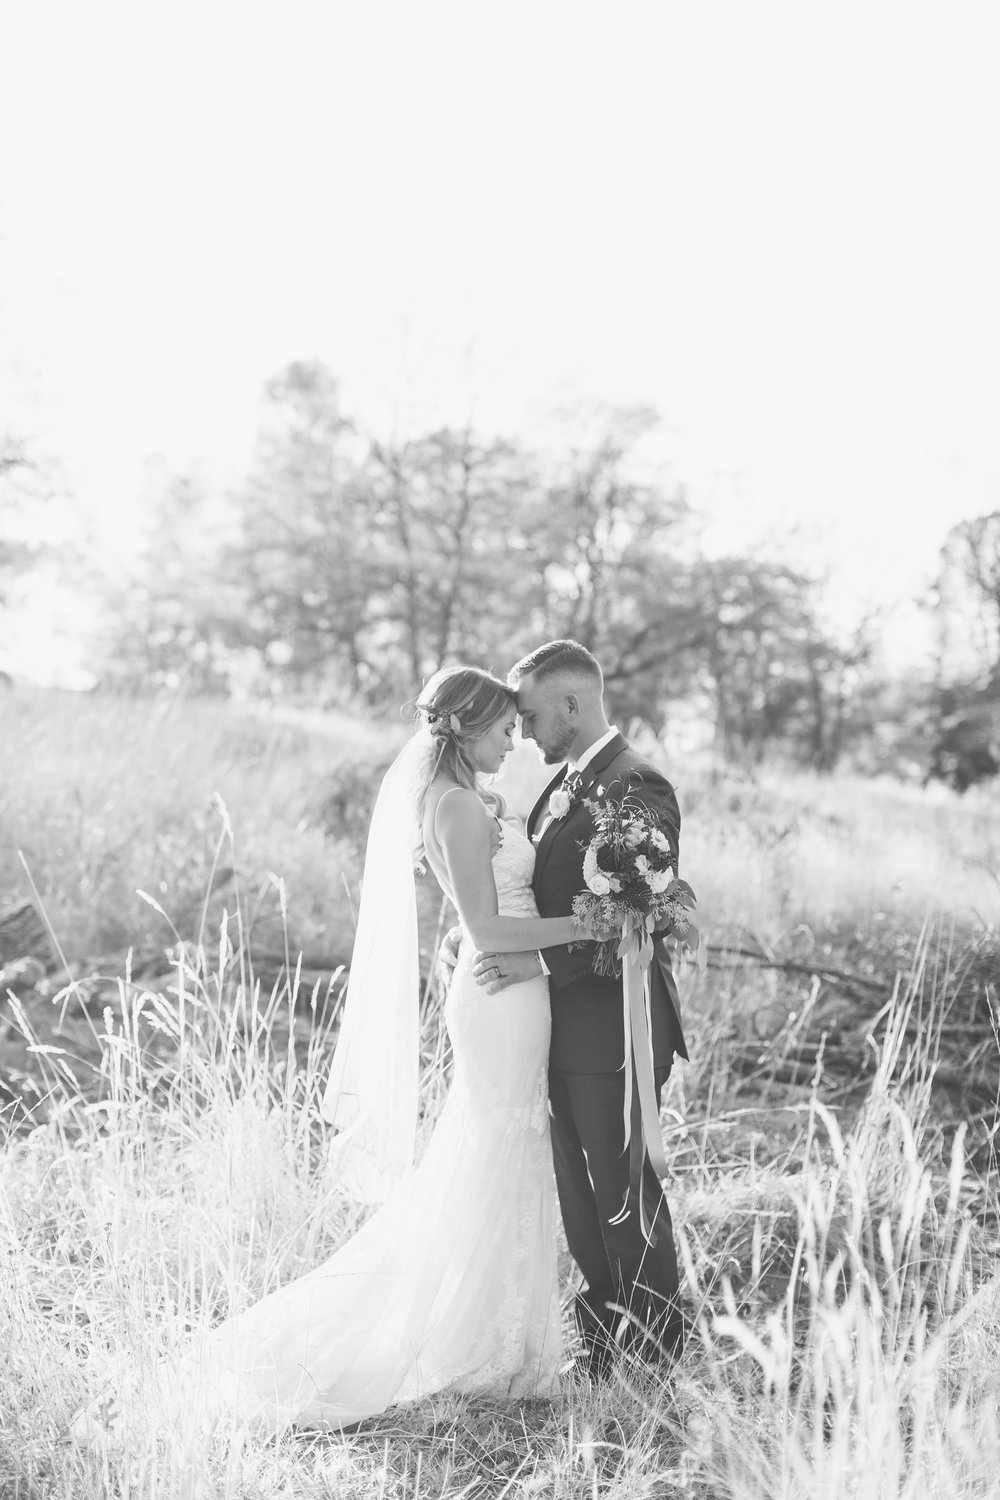 dillon+stephanie-wedding-80.jpg